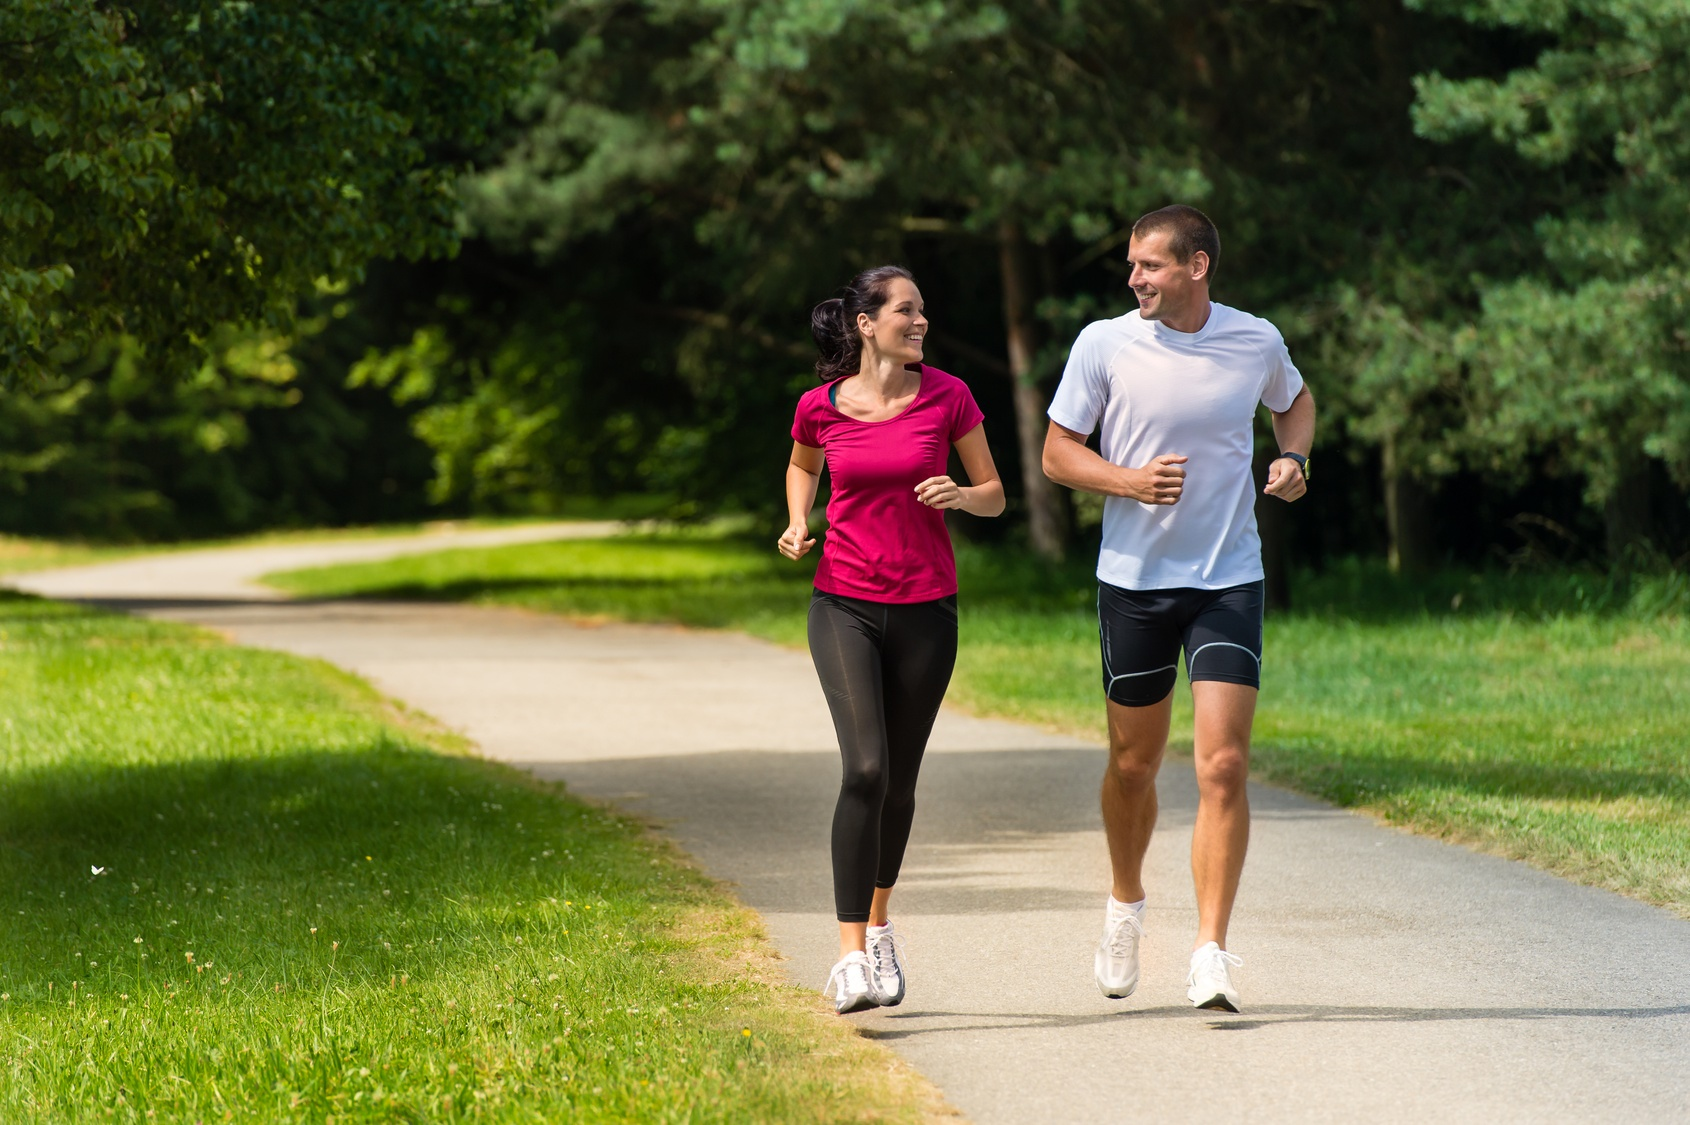 Take your running to another level and hire a running coach